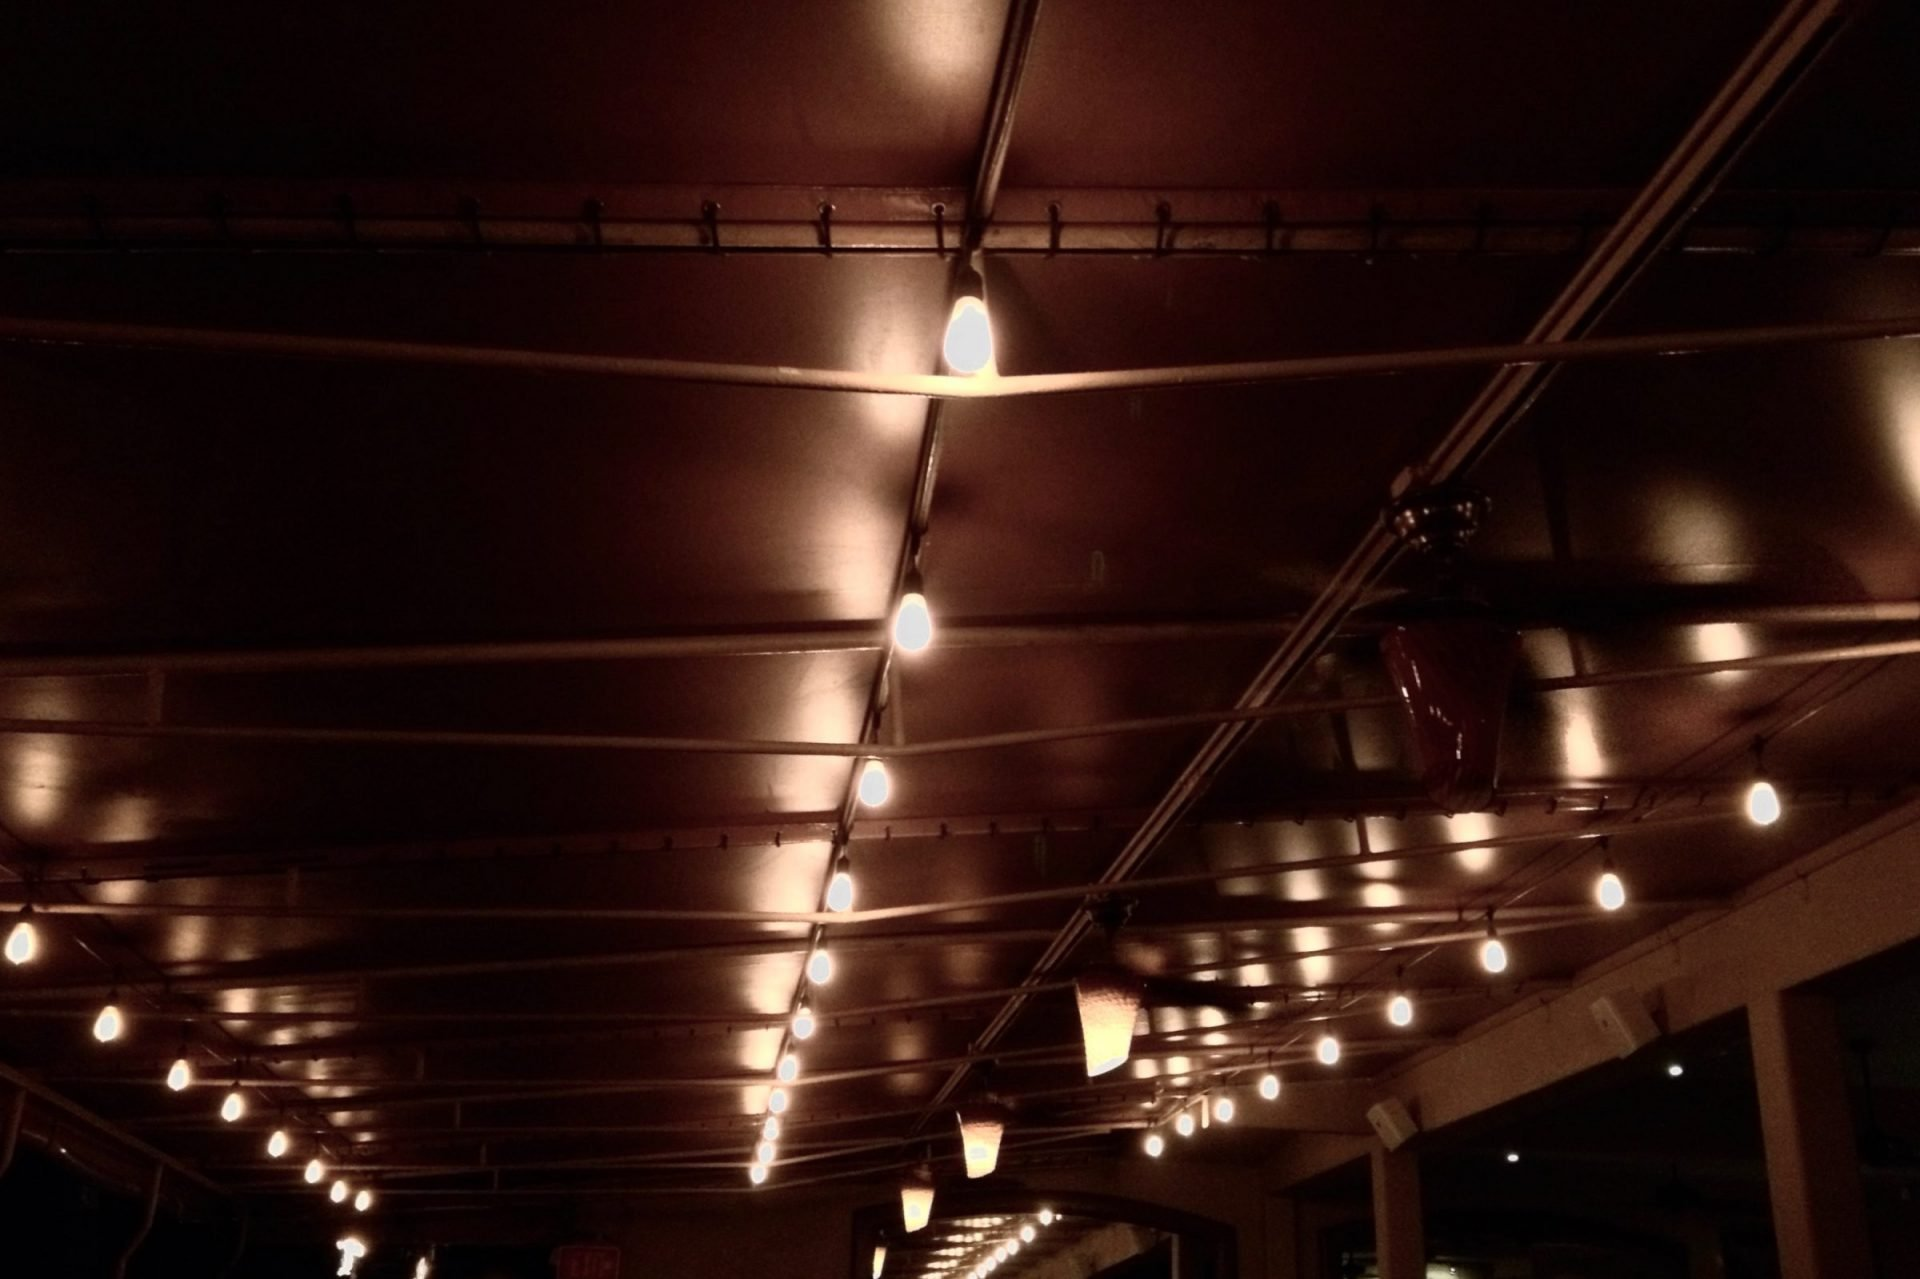 Lights on Industrial Ceiling